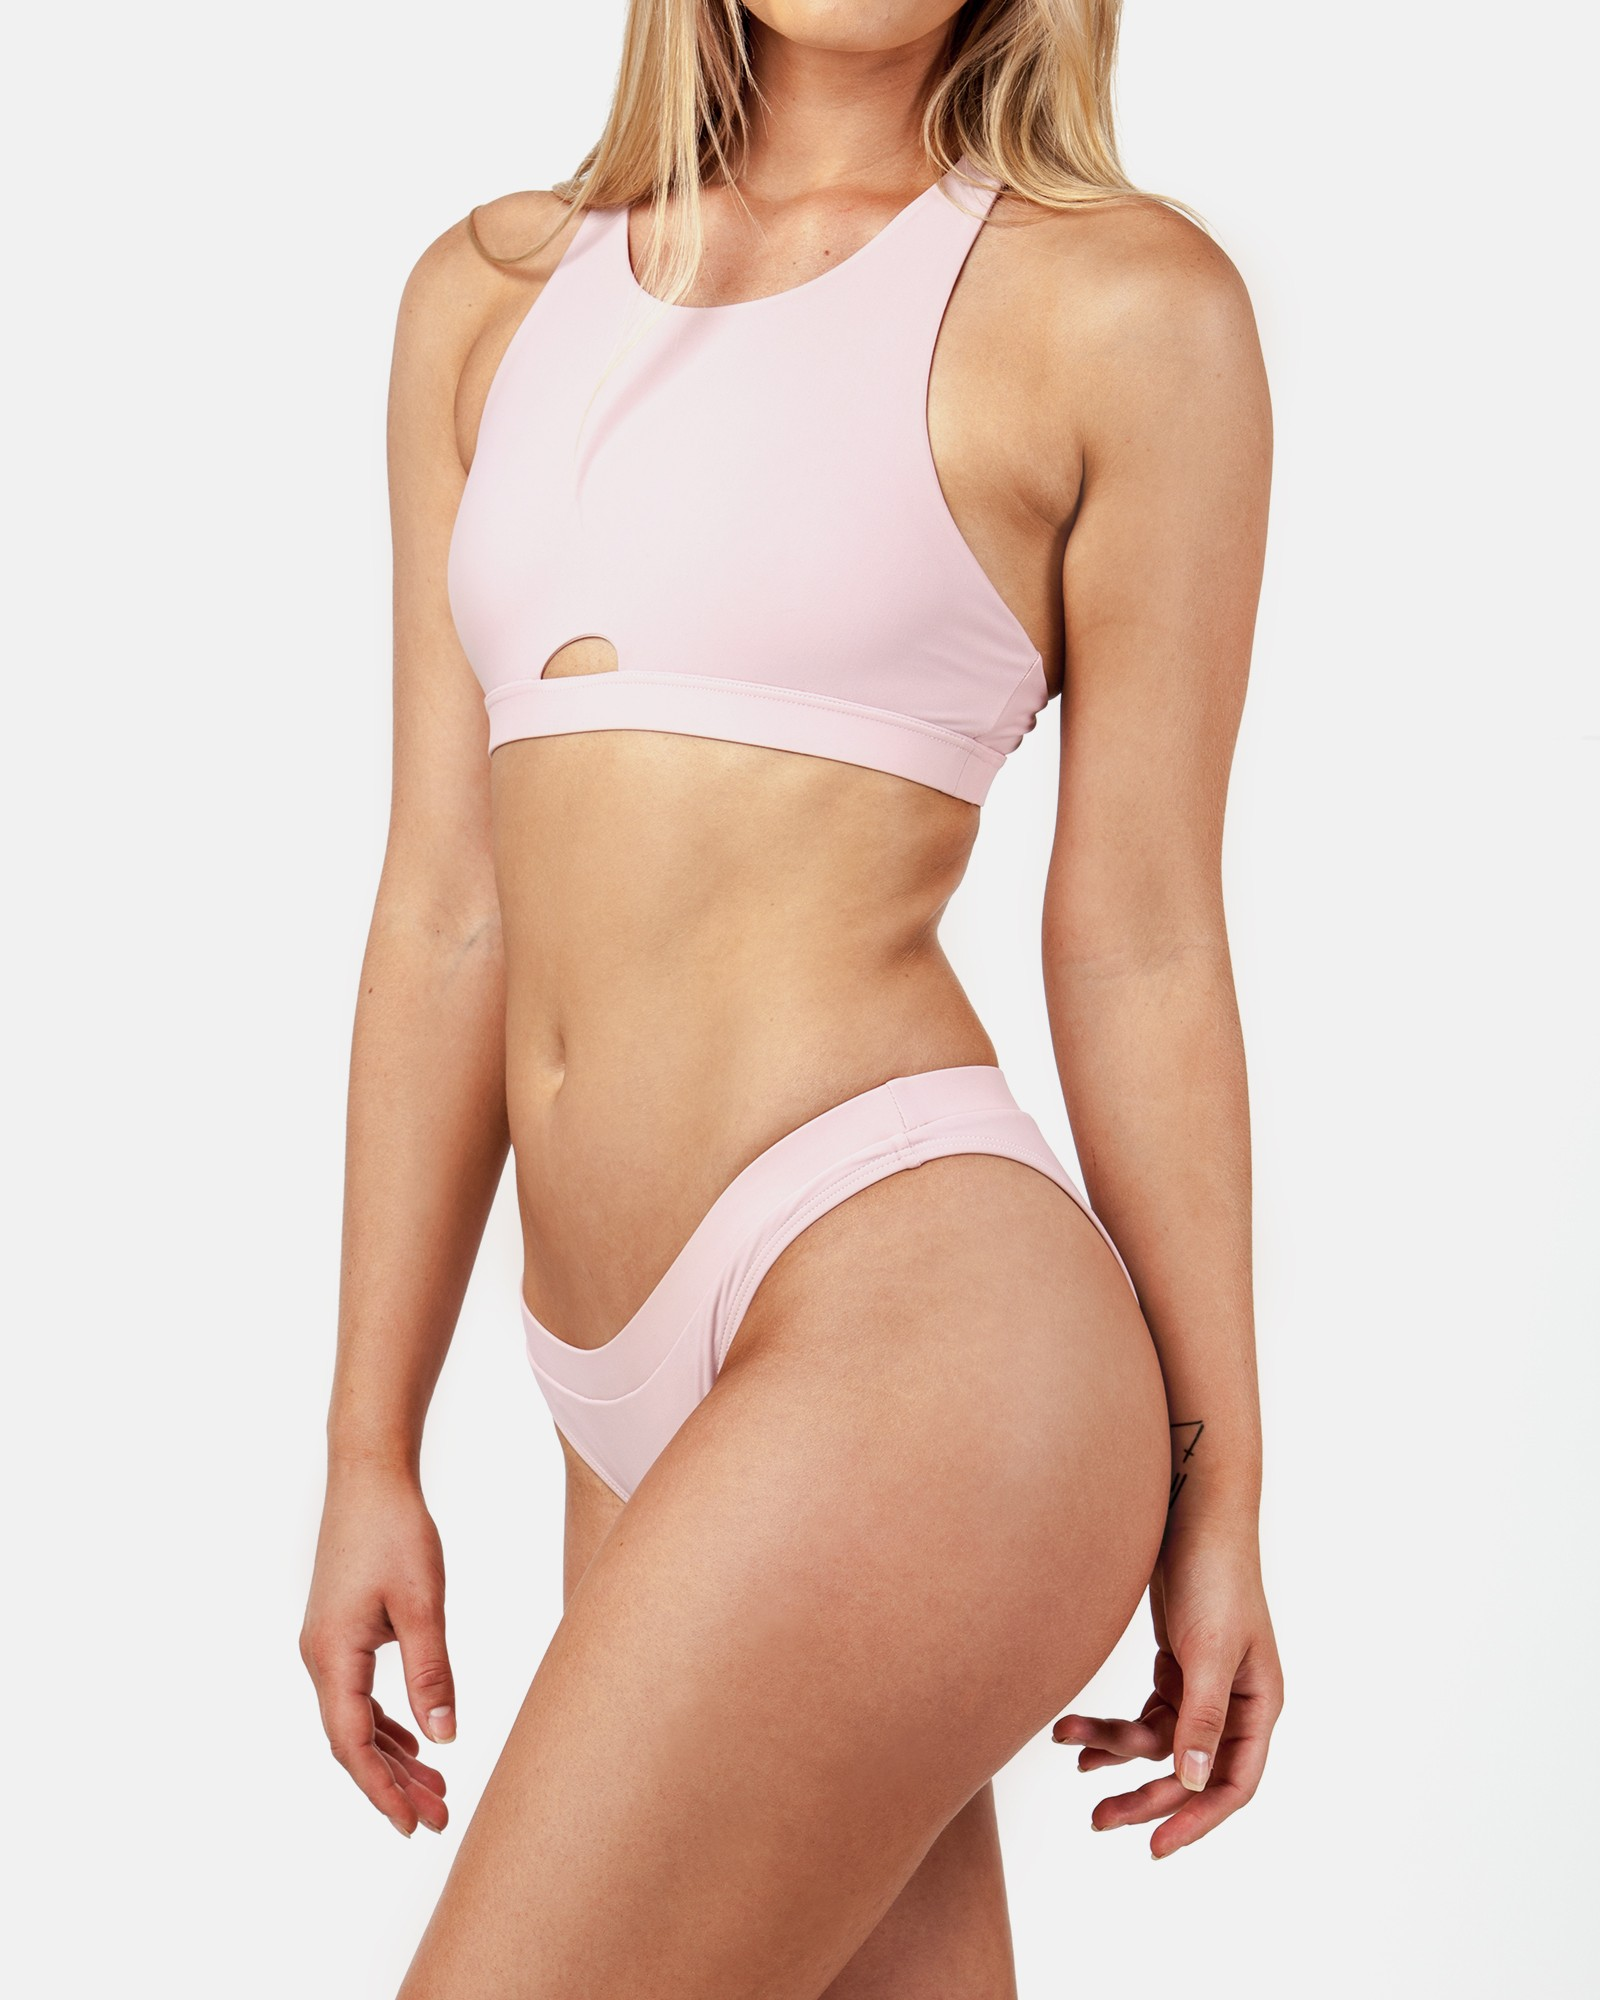 MARY KATE BLUSH TOP